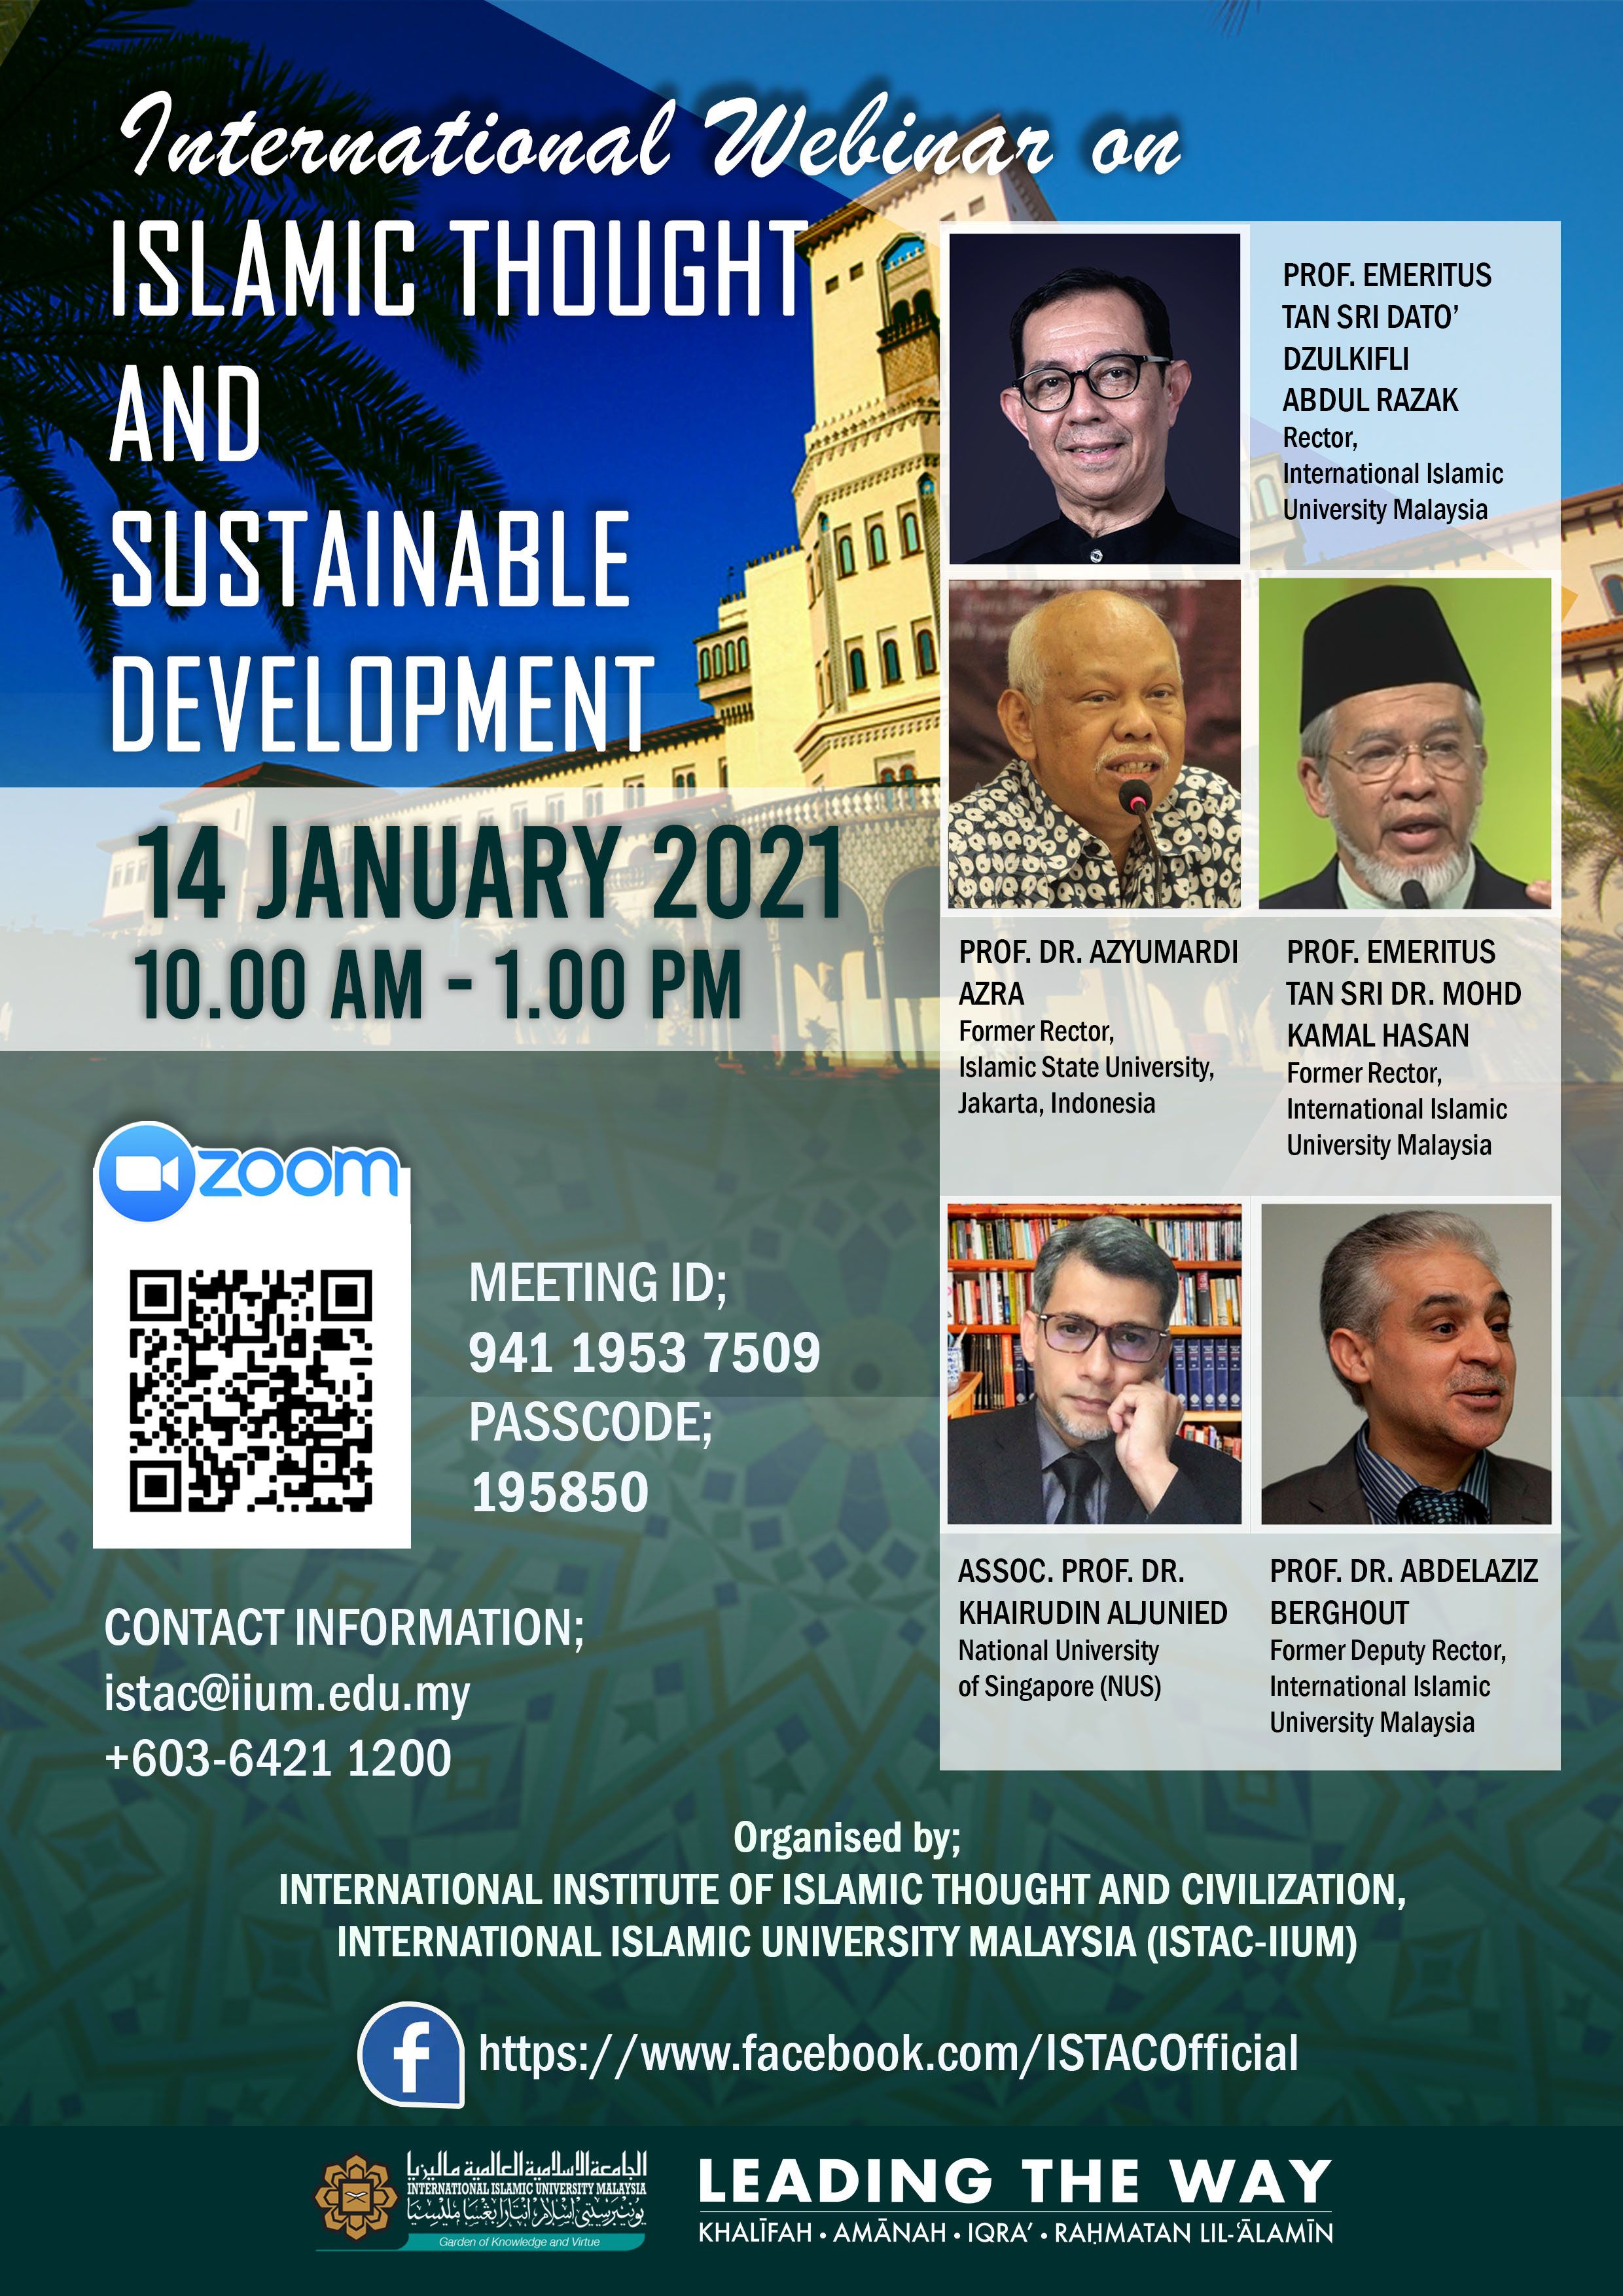 INTERNATIONAL WEBINAR ON ISLAMIC THOUGHT AND SUSTAINABLE DEVELOPMENT